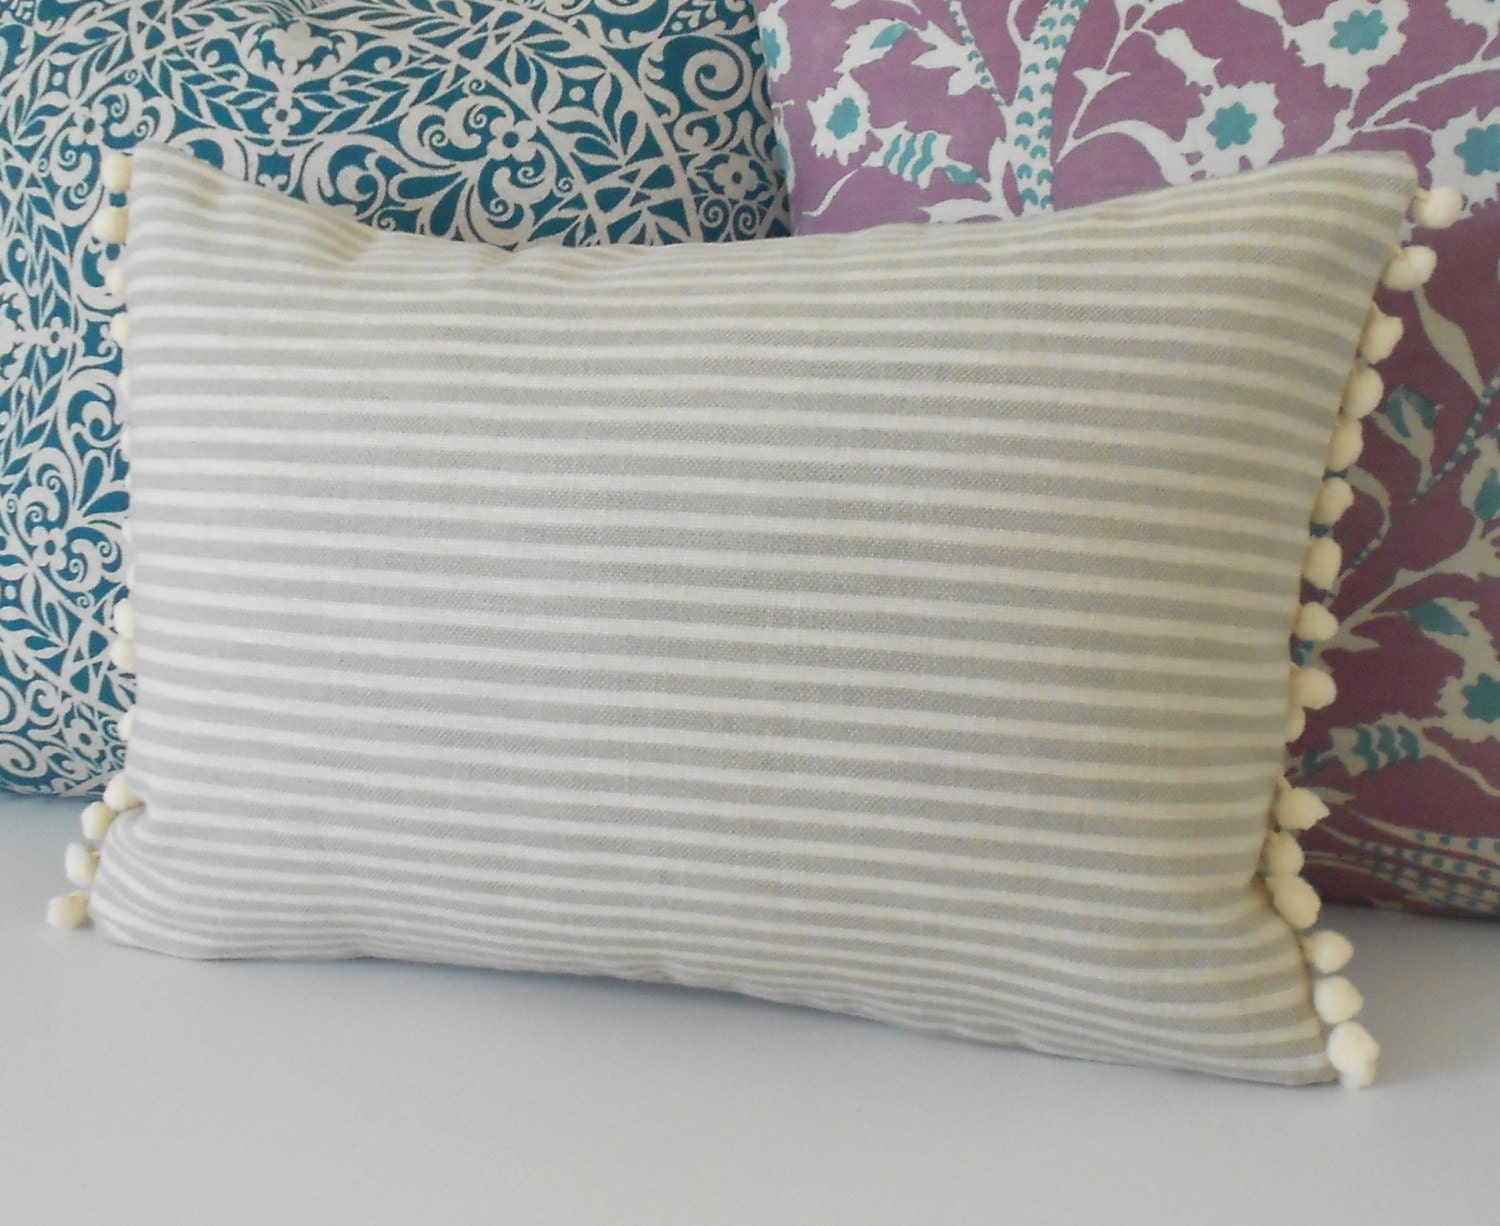 Tan and cream small stripe decorative pillow cover with pom